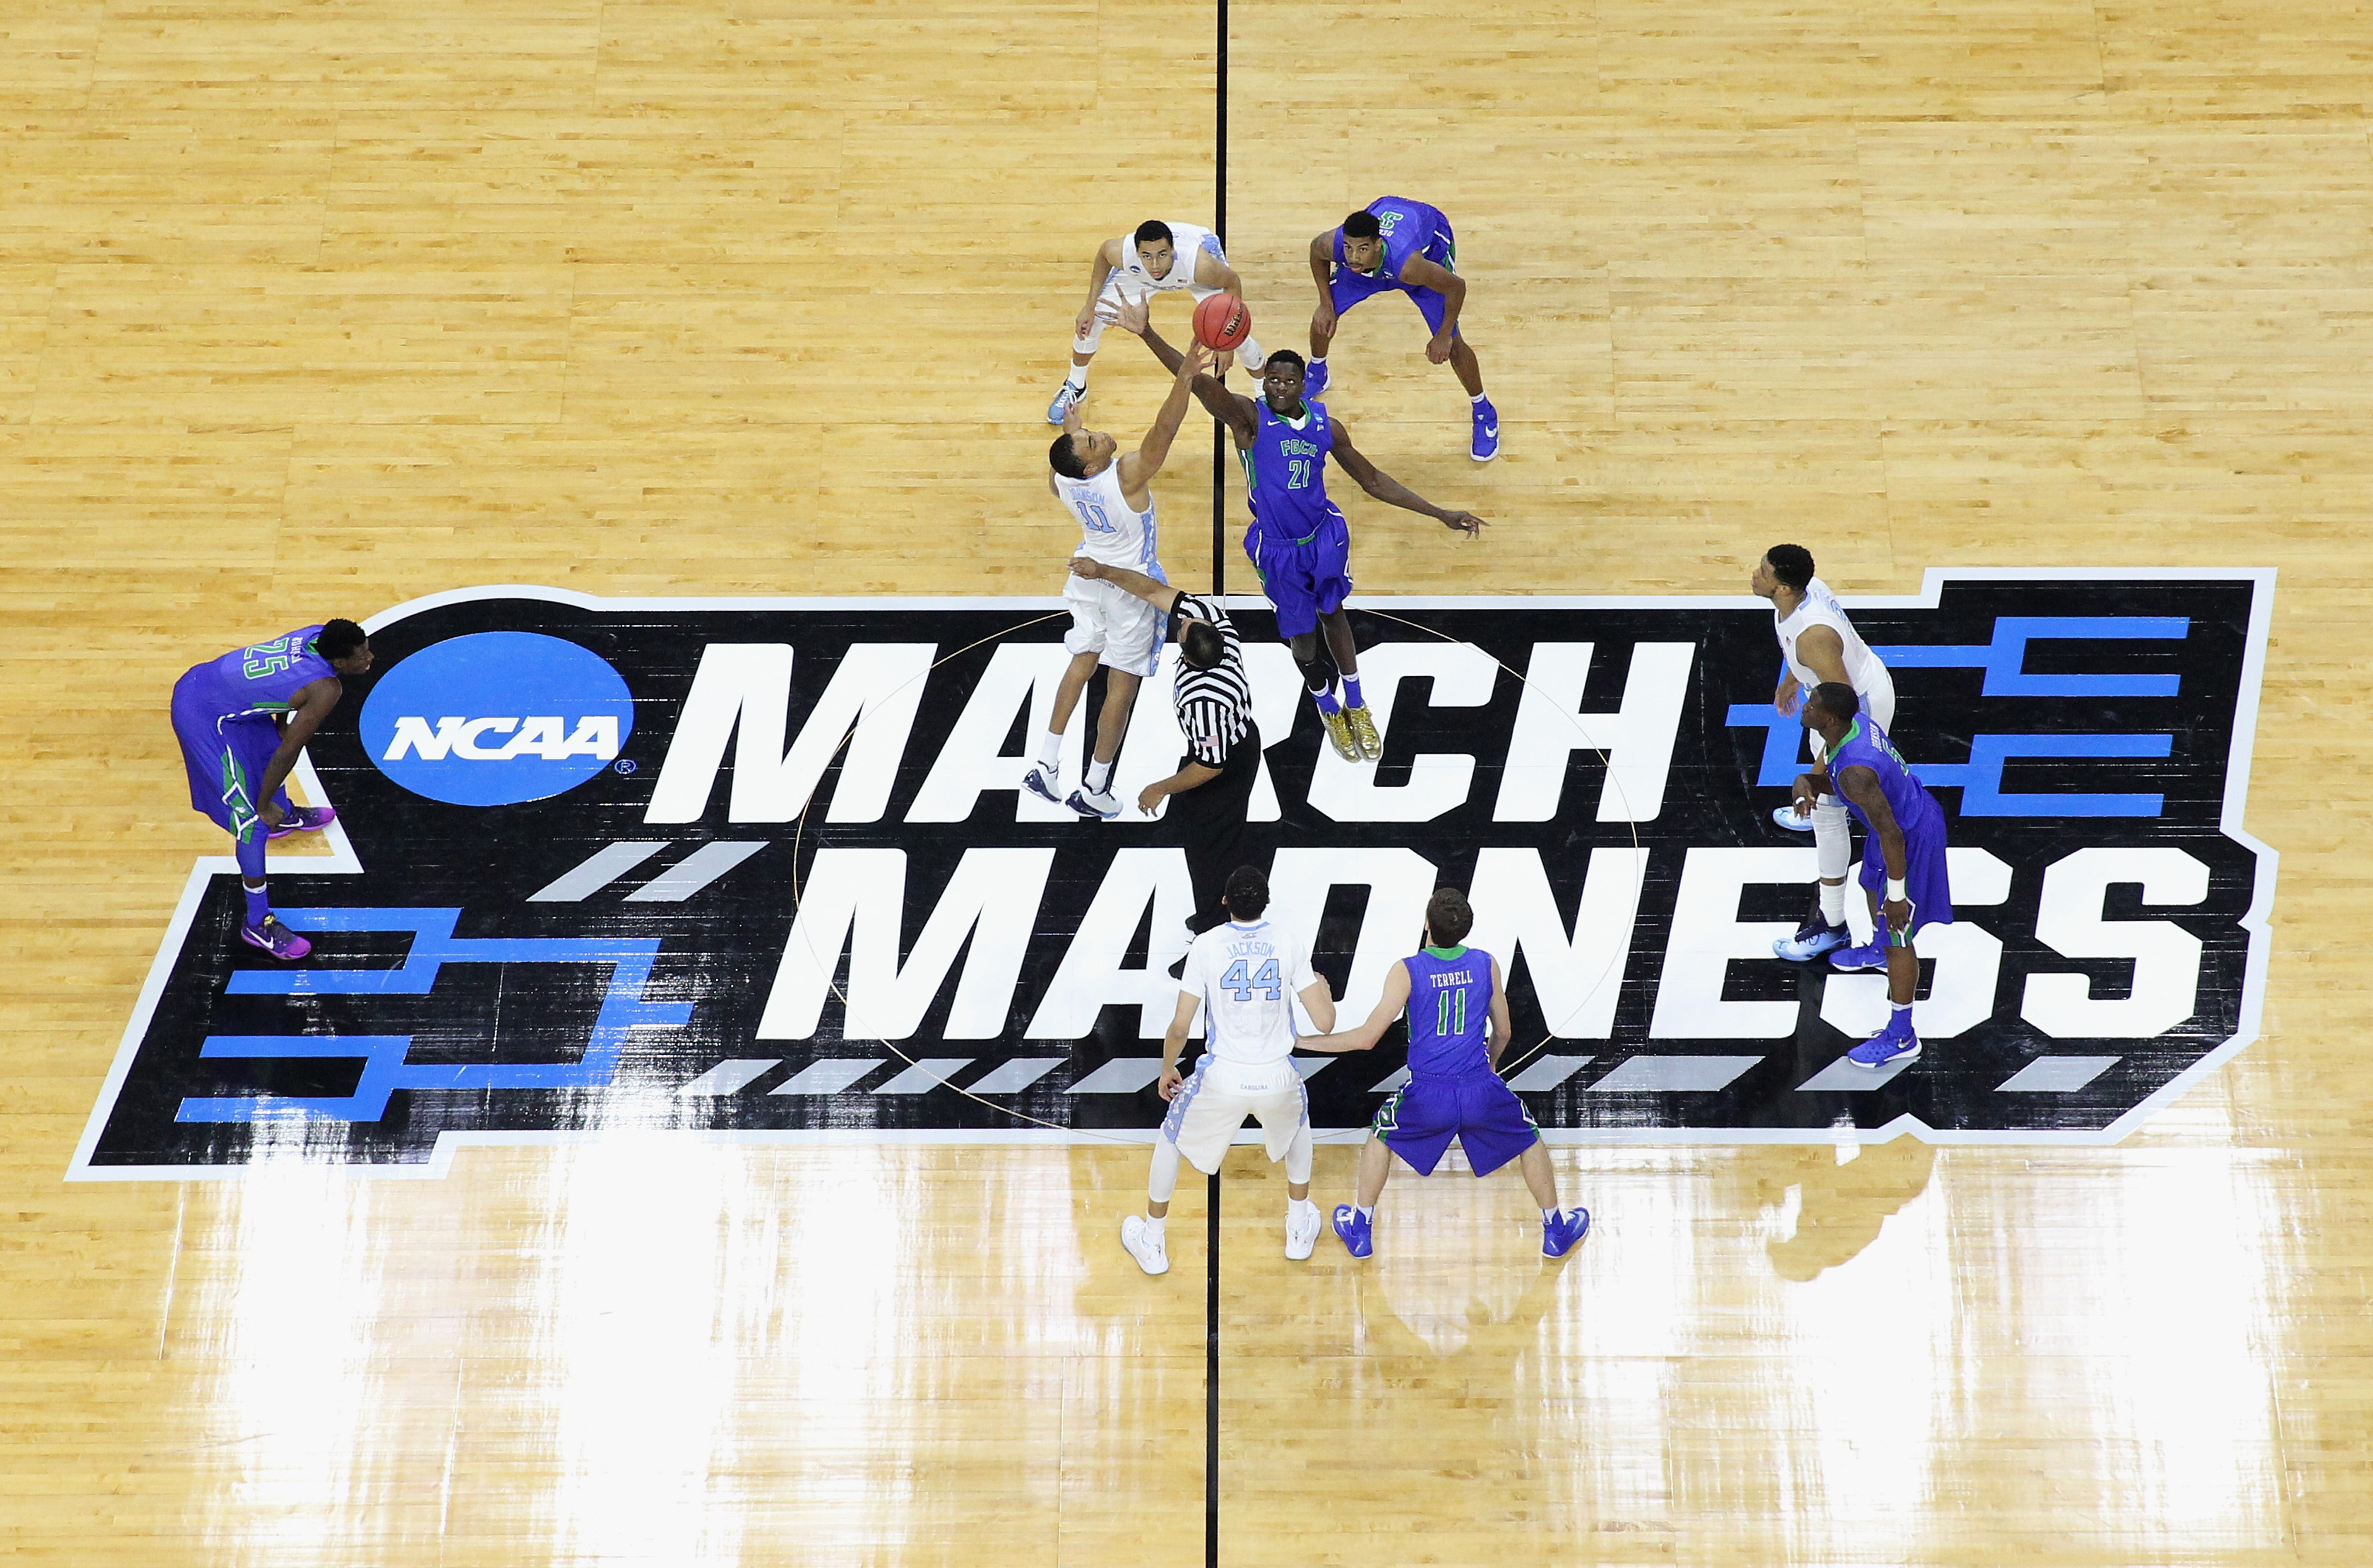 How Statistics Apply to March Madness